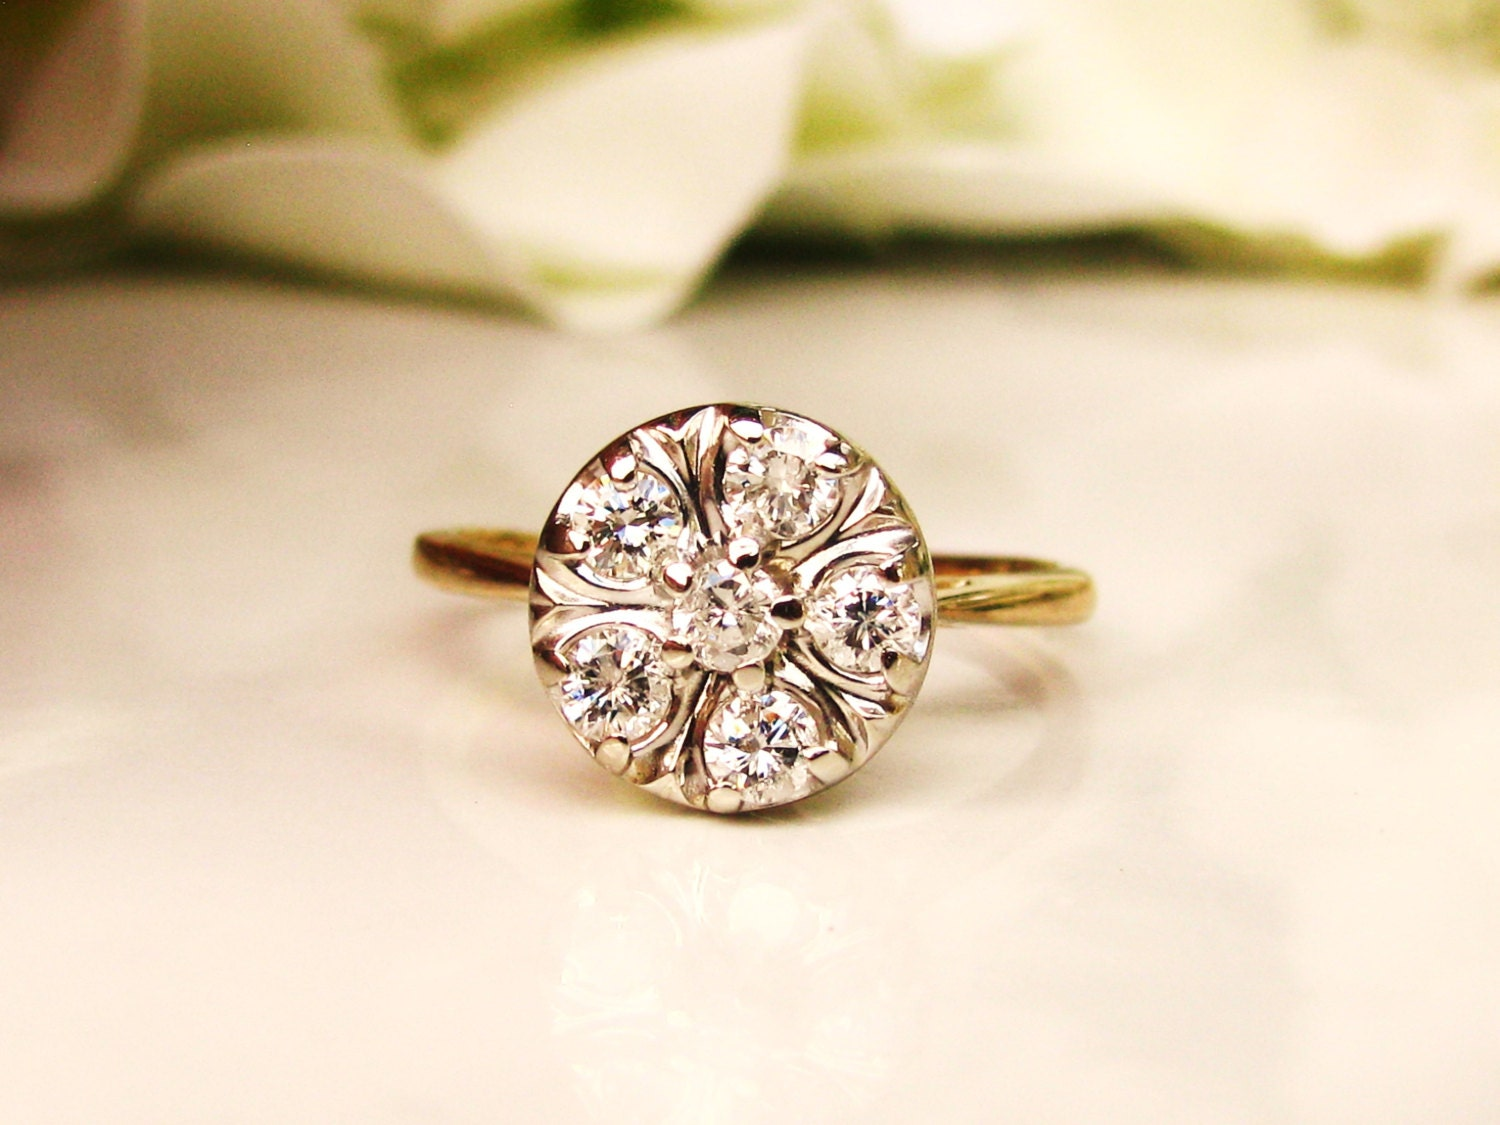 style daisy products co engagement ring diamond cluster rings uk gold